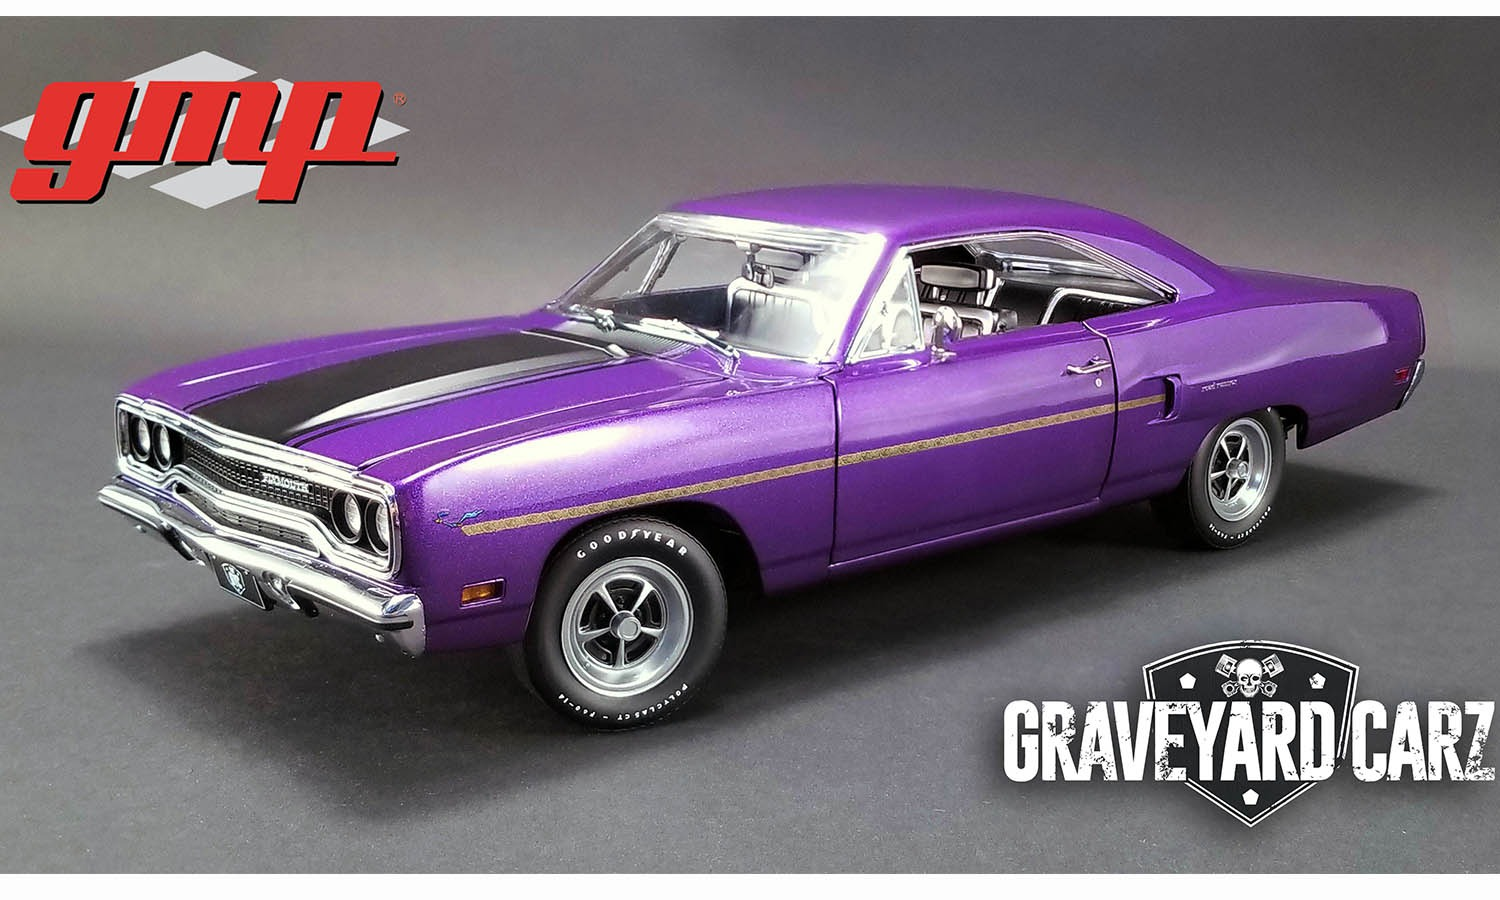 GMP 1:18 1970年モデル プリムス ロードランナー 2012 TV Drama Graveyard Carz1970 Plymouth Road Runner 1/18 Graveyard Carz by GMP